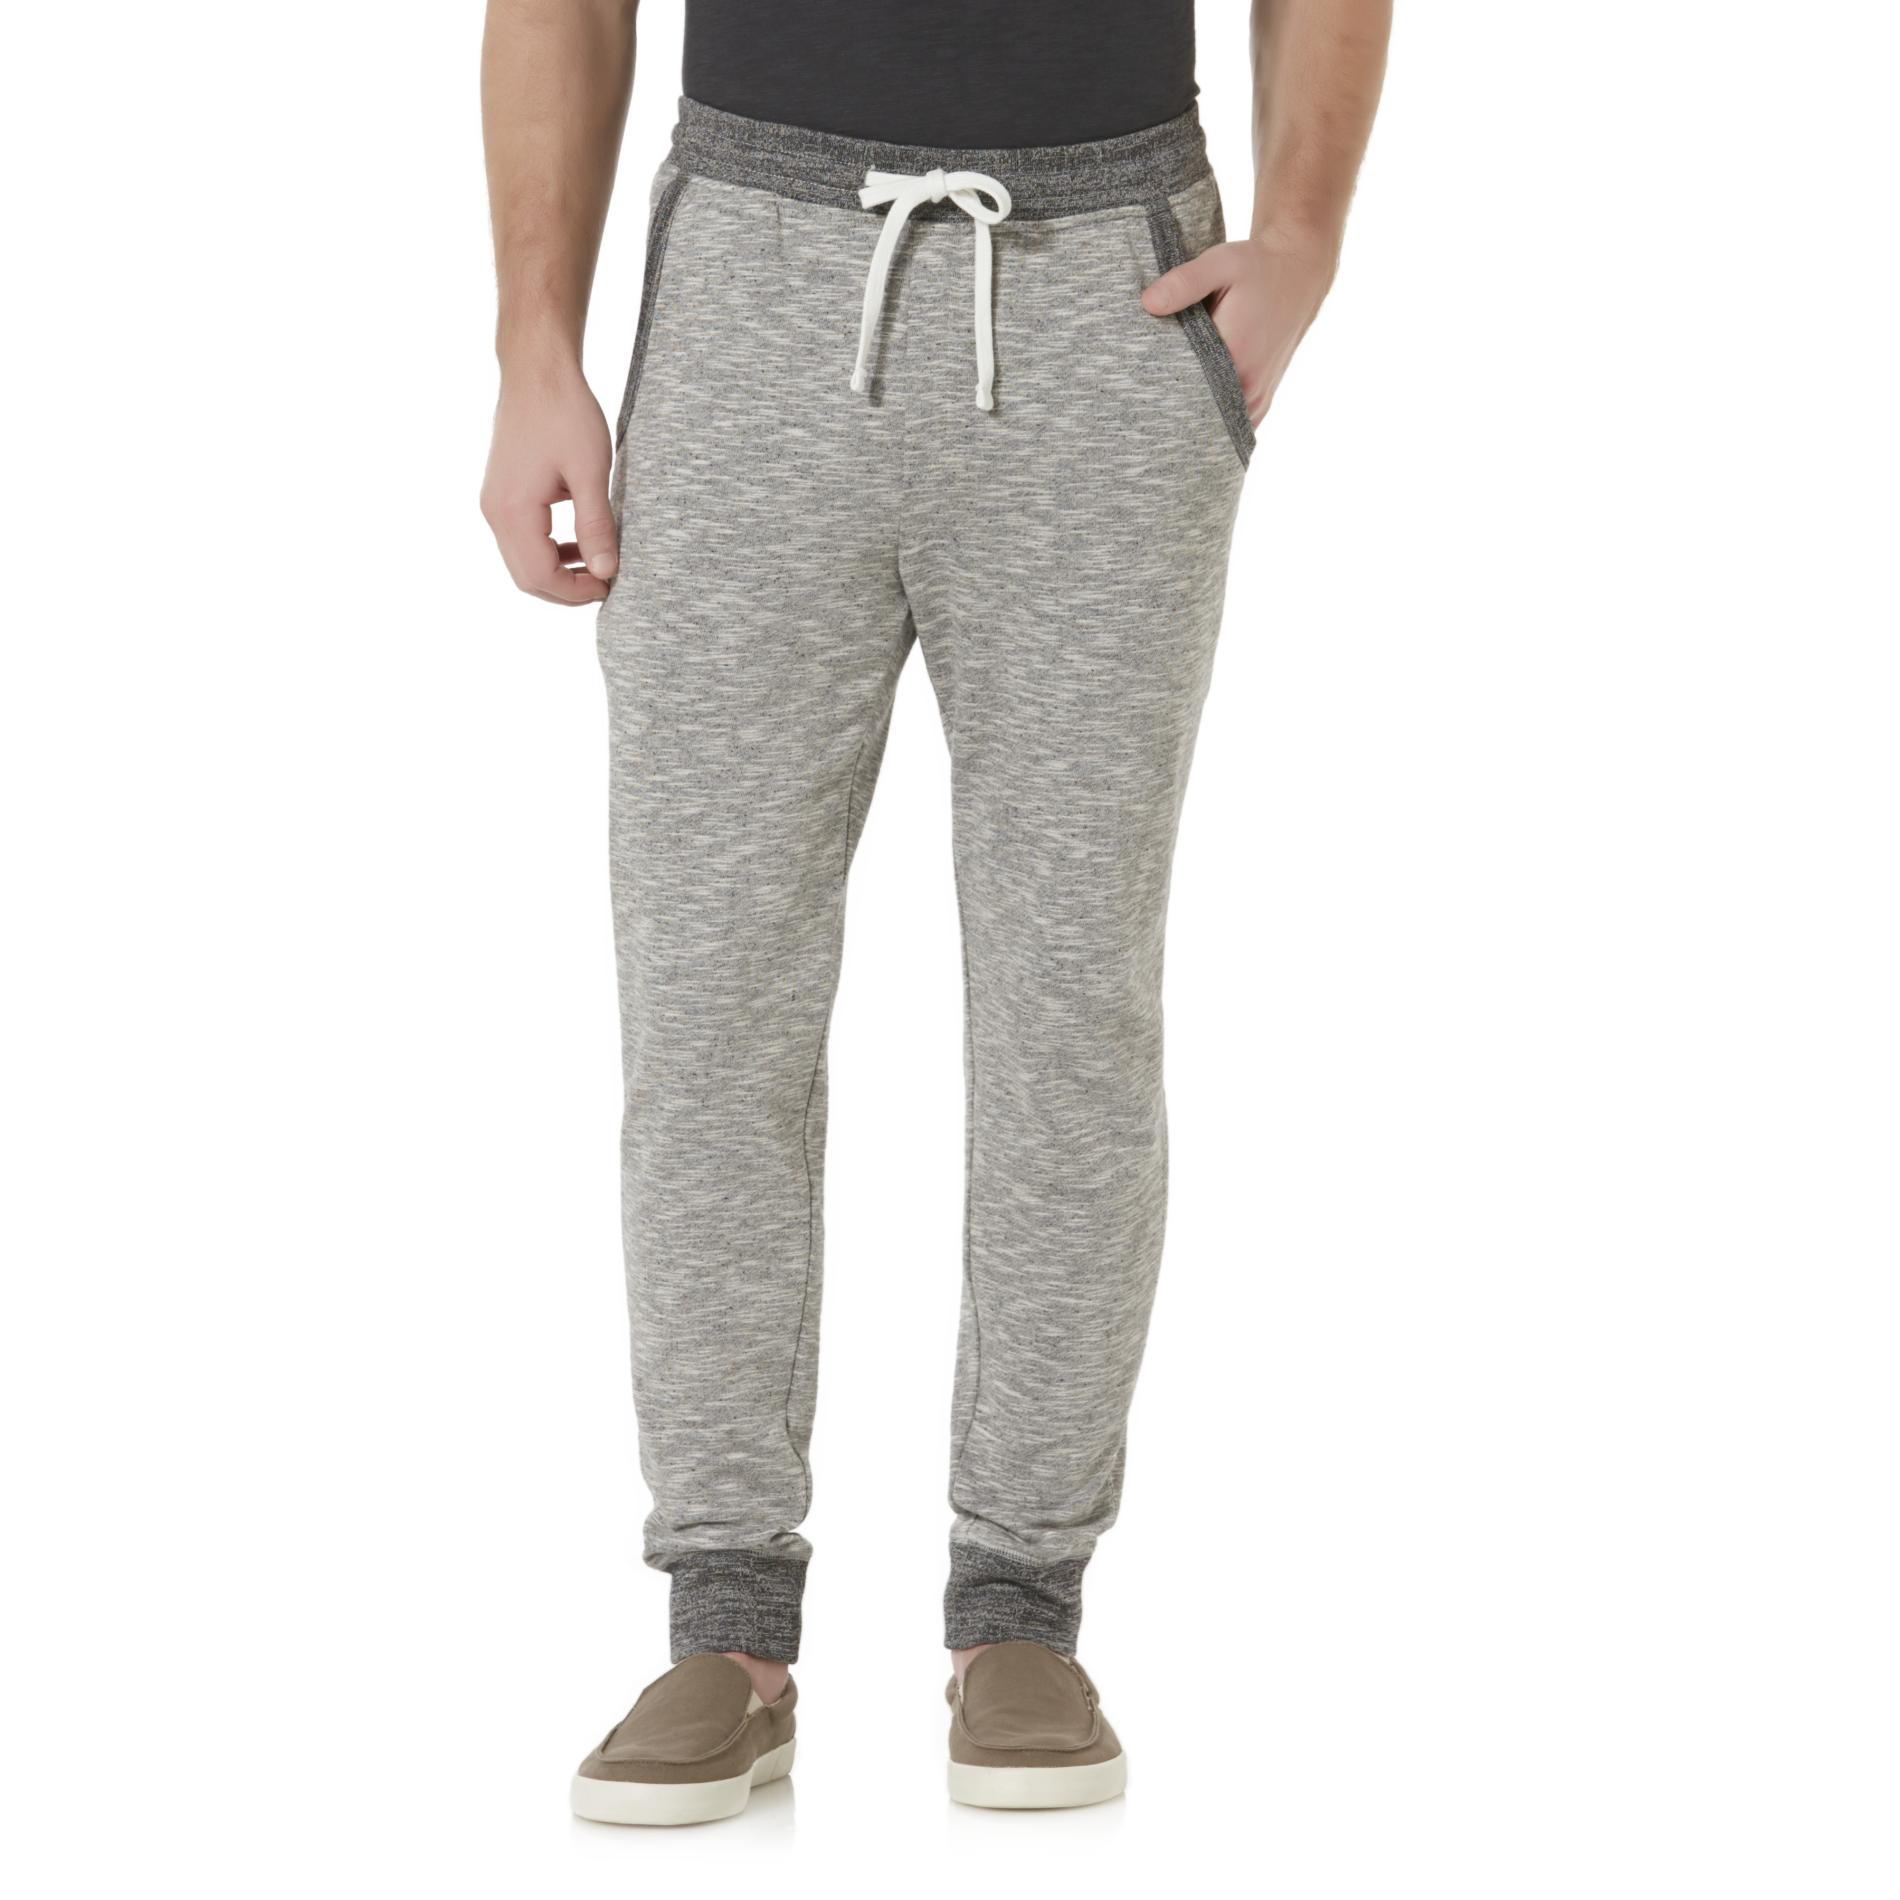 Amplify Young Men's Jogger Pants - Space-Dyed 043VA87069712P